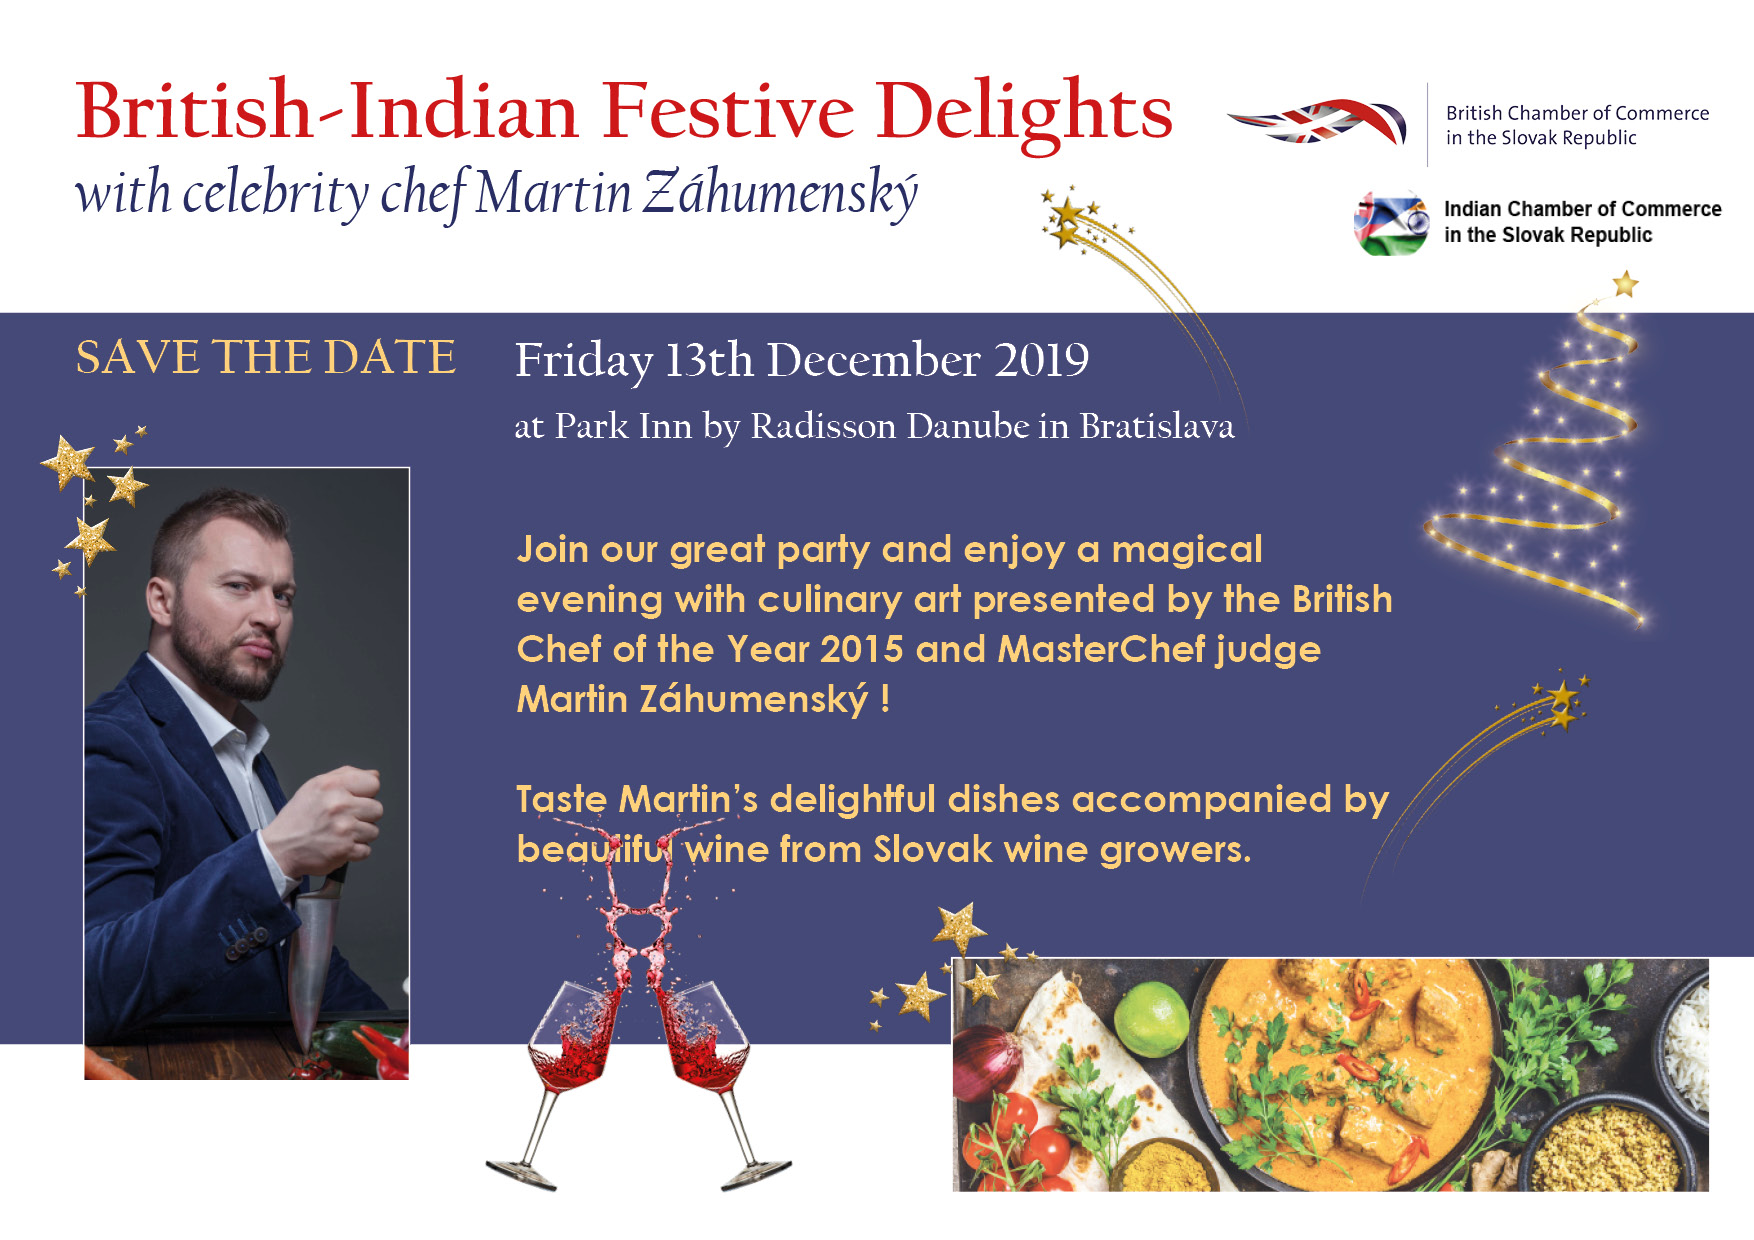 British Indian Festive delights Save the Date Final